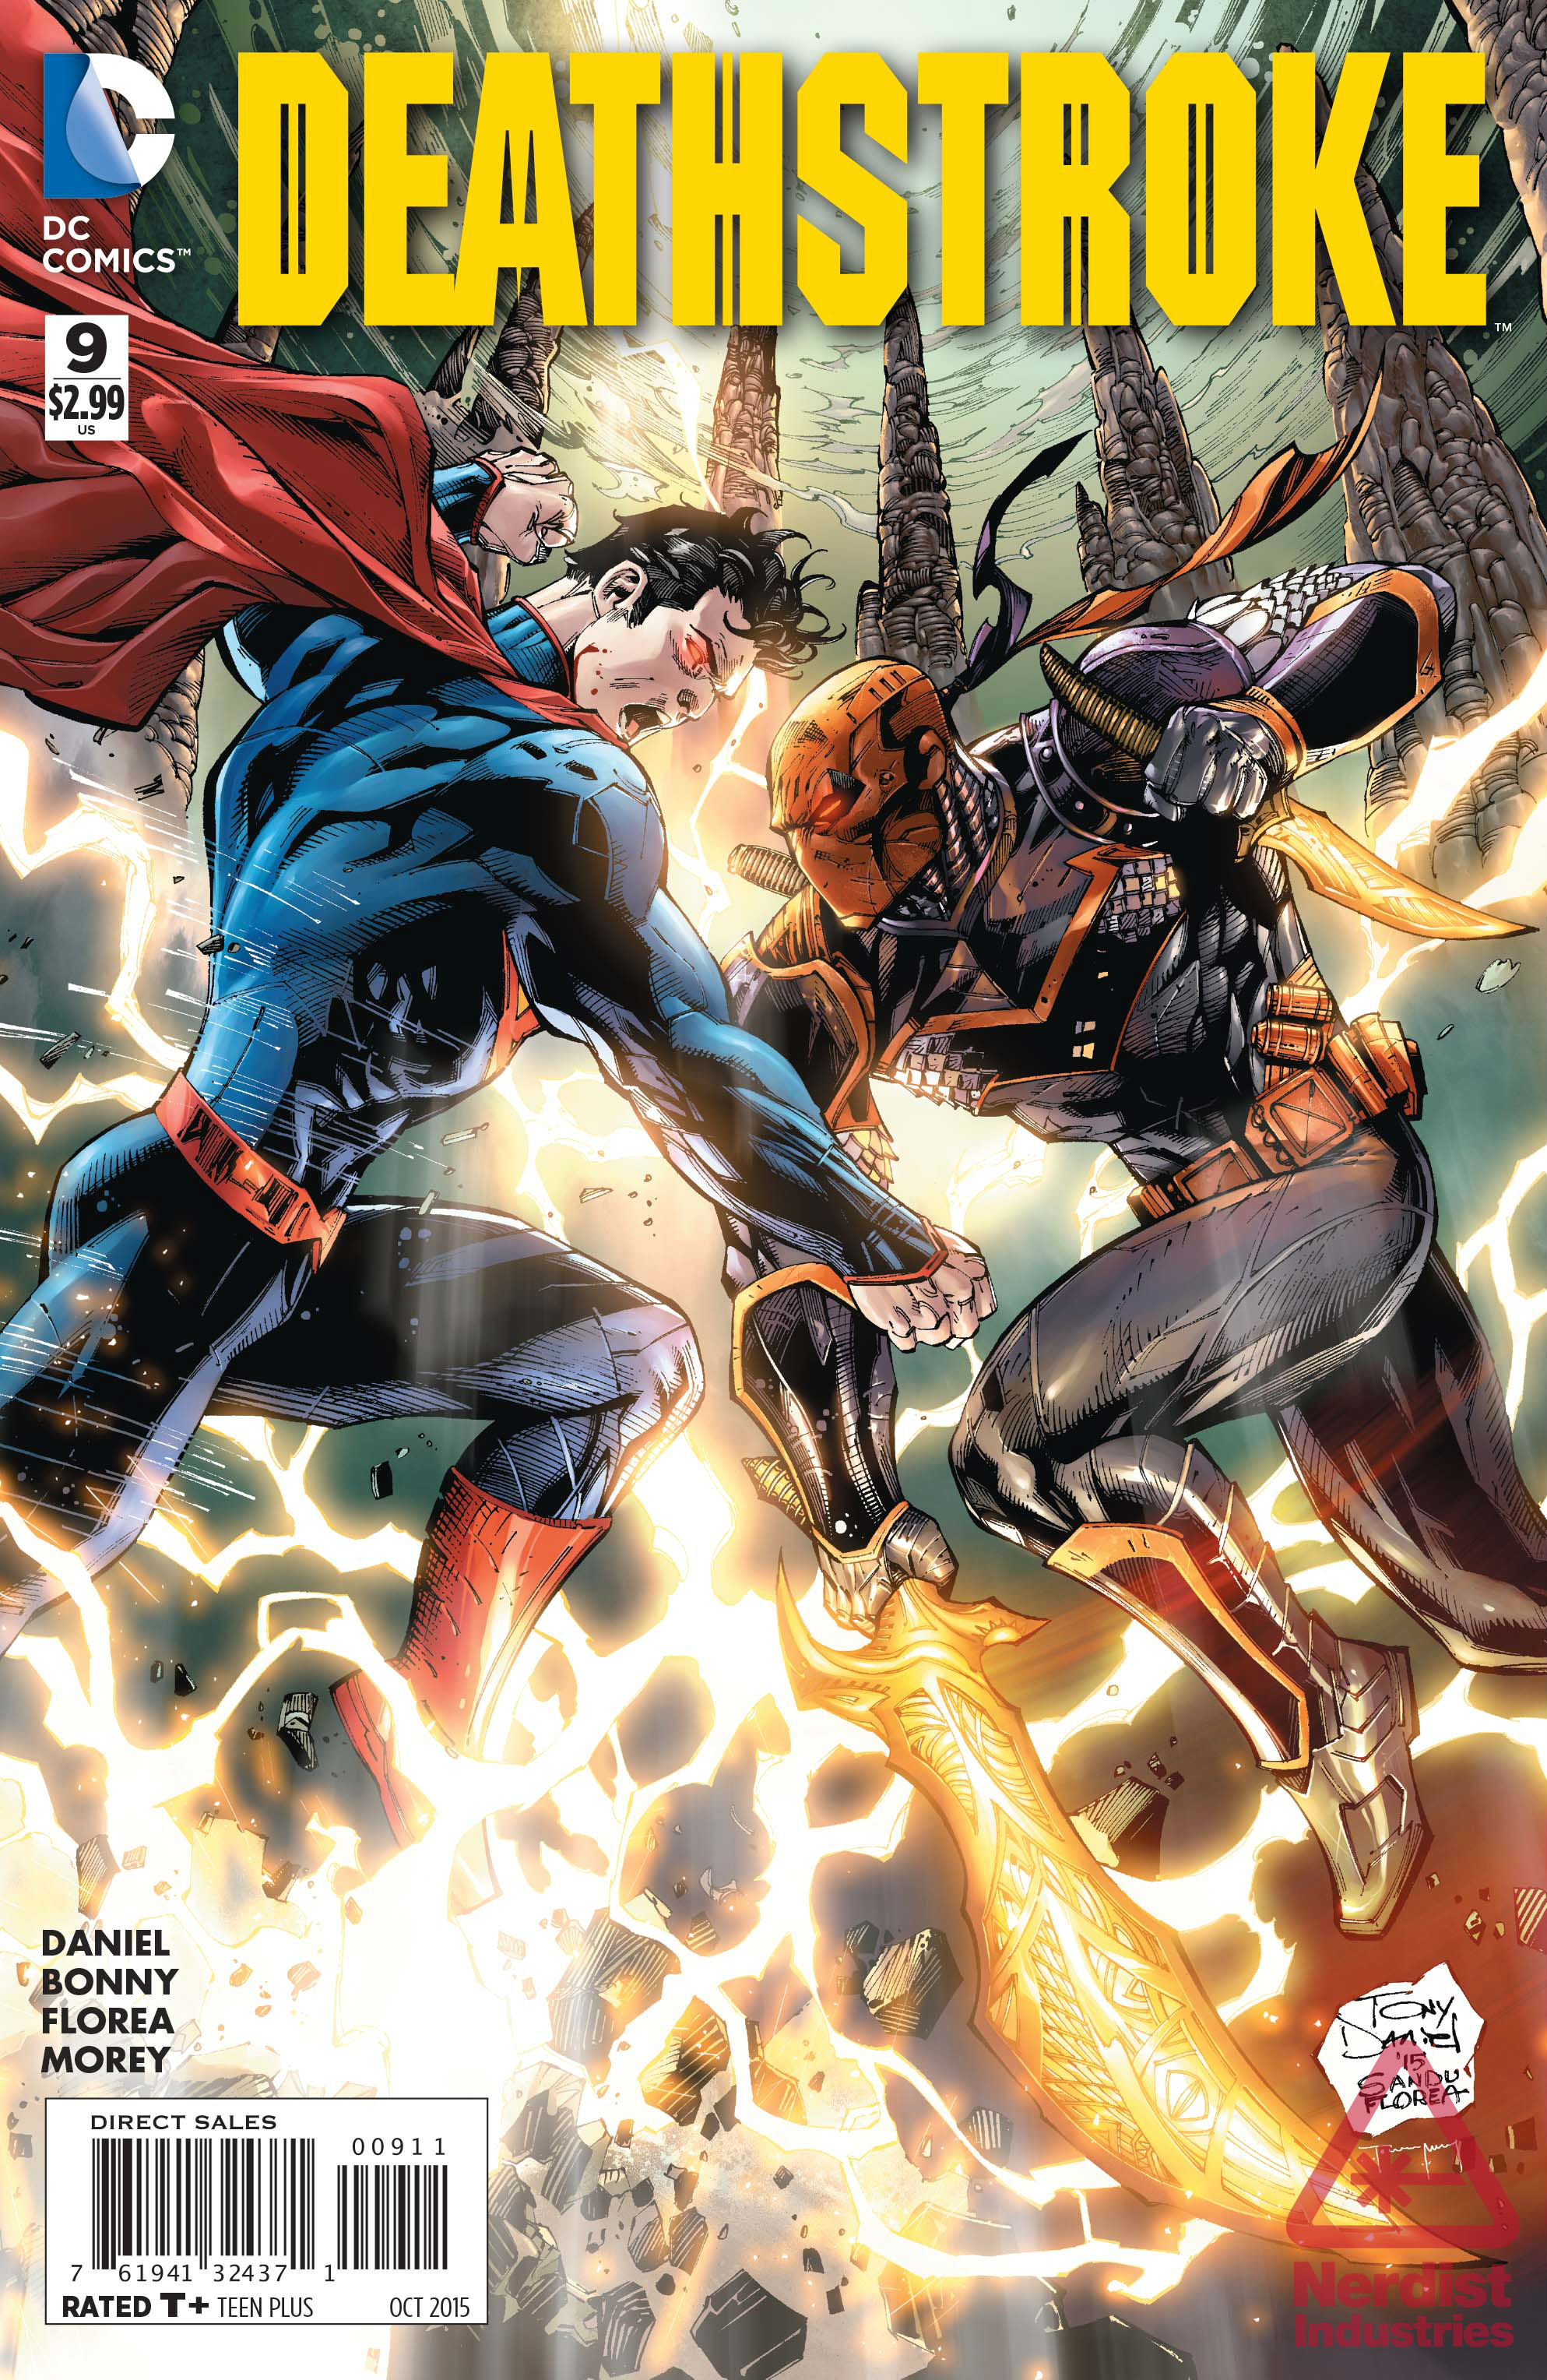 preview deathstroke 9 is packed with death destruction and